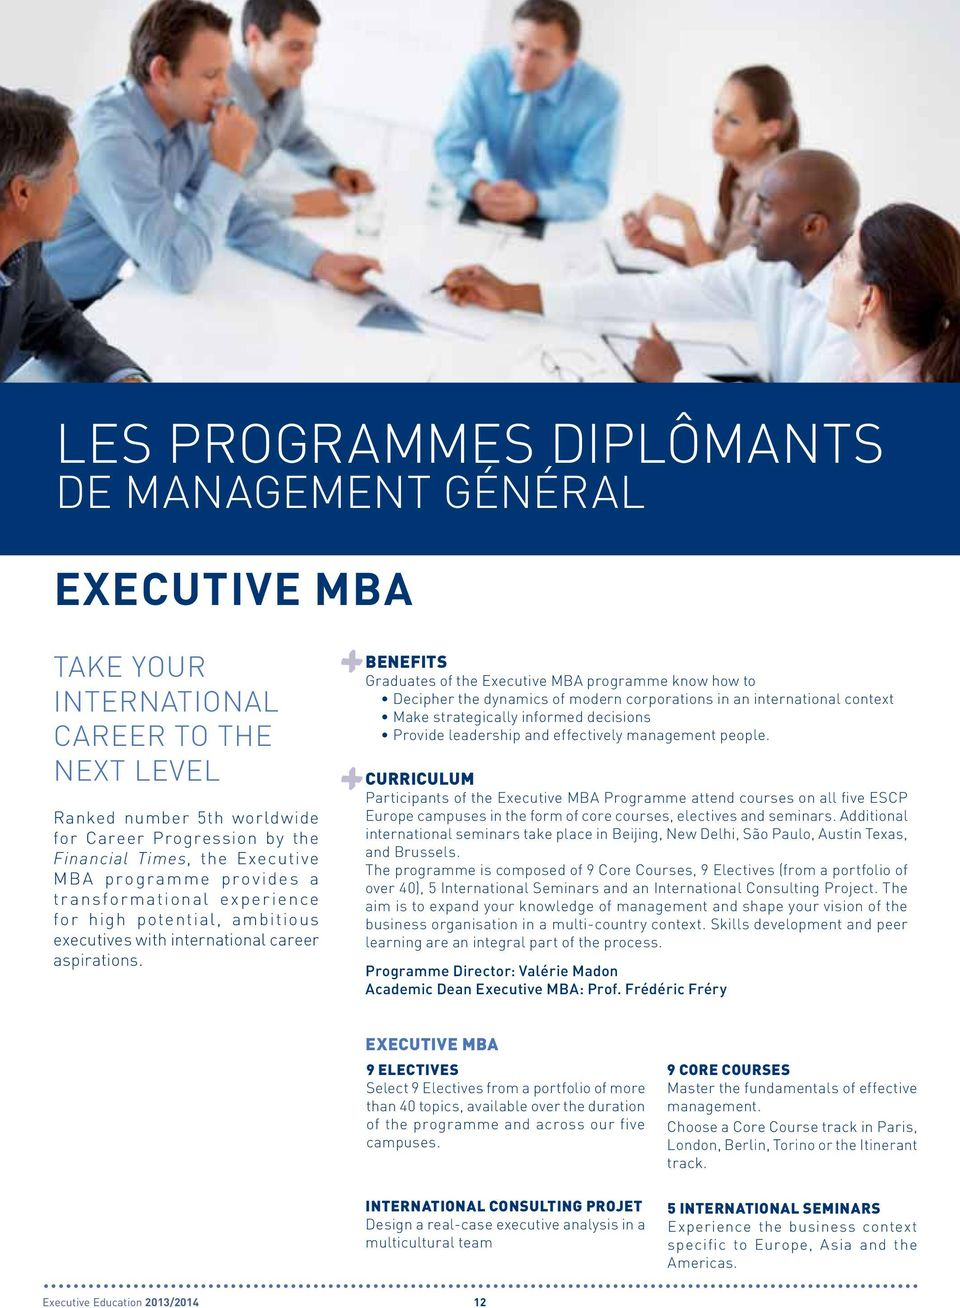 BENEFITS Graduates of the Executive MBA programme know how to Decipher the dynamics of modern corporations in an international context Make strategically informed decisions Provide leadership and